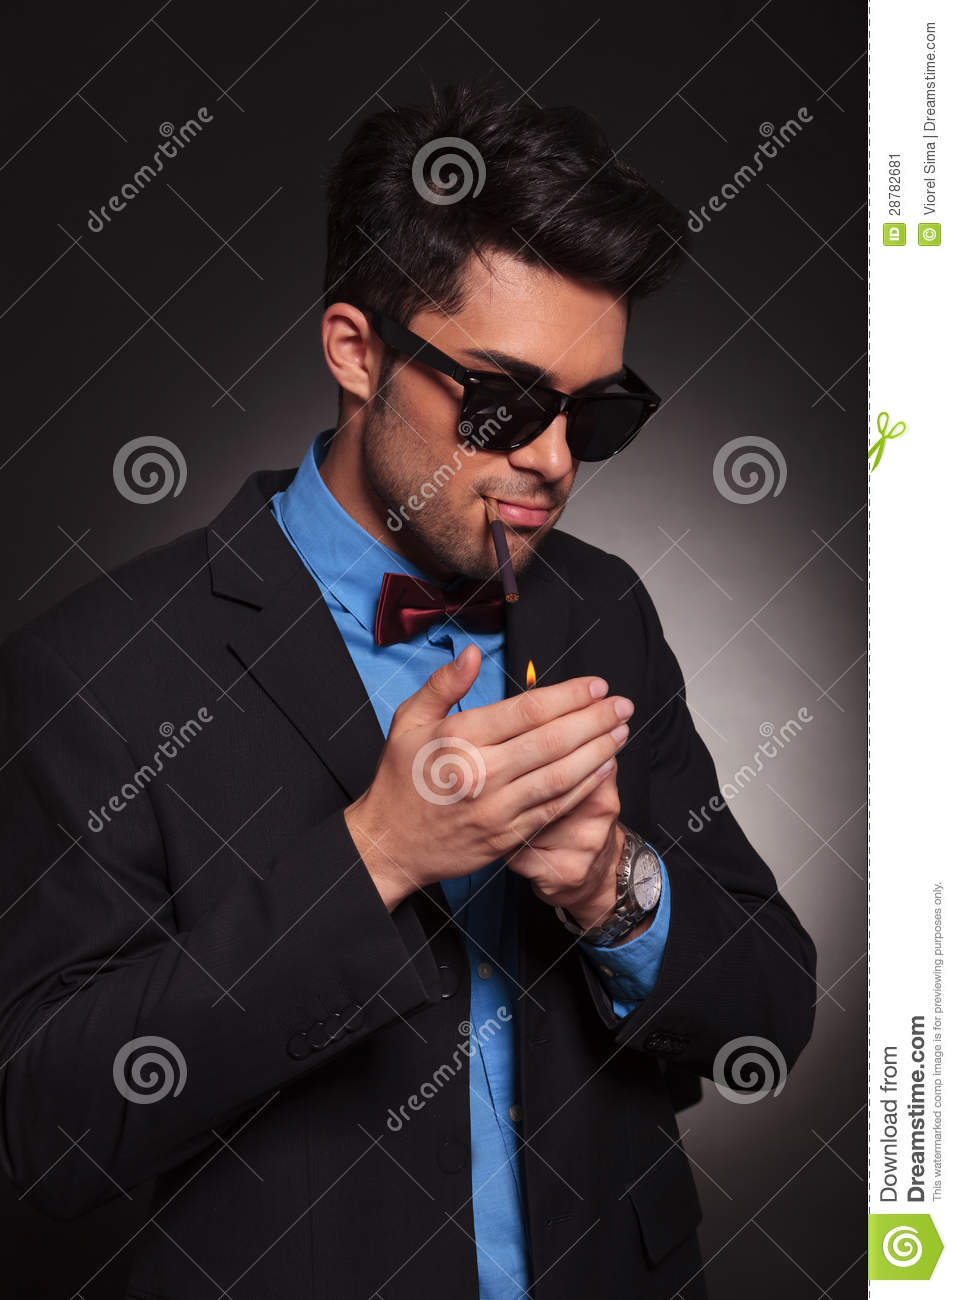 Young Fashion Man Lighting His Cigarette Stock Image - Image of copy, habit: 28782681